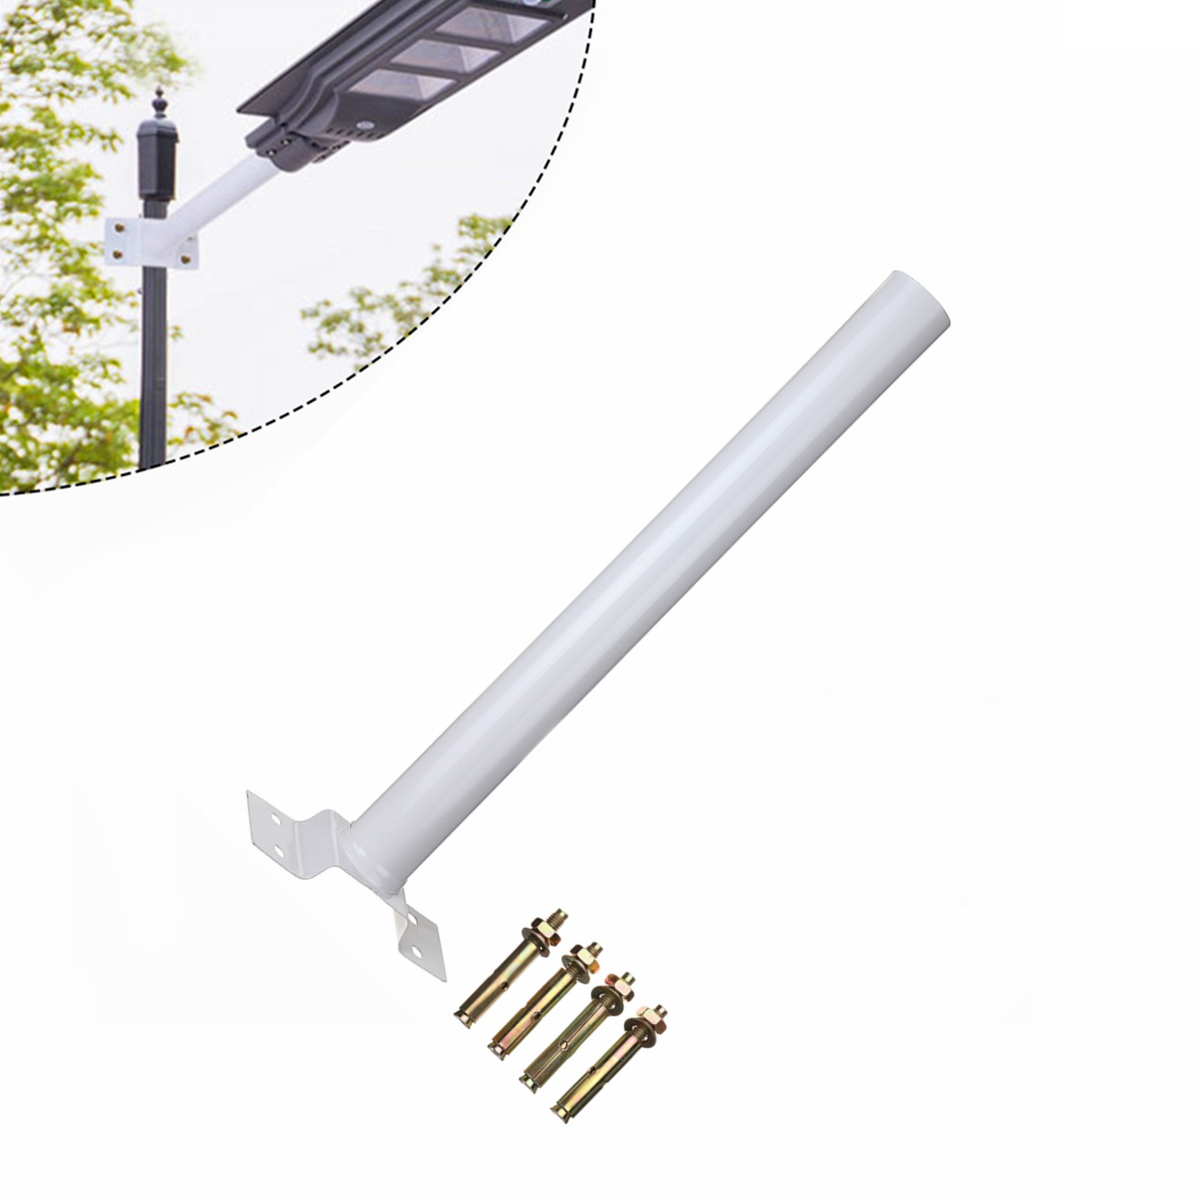 500x50mm 60W 90W 120W LED Solar Street Light Support Btacket With Mounting Accessories White Color Installation Pole Frame